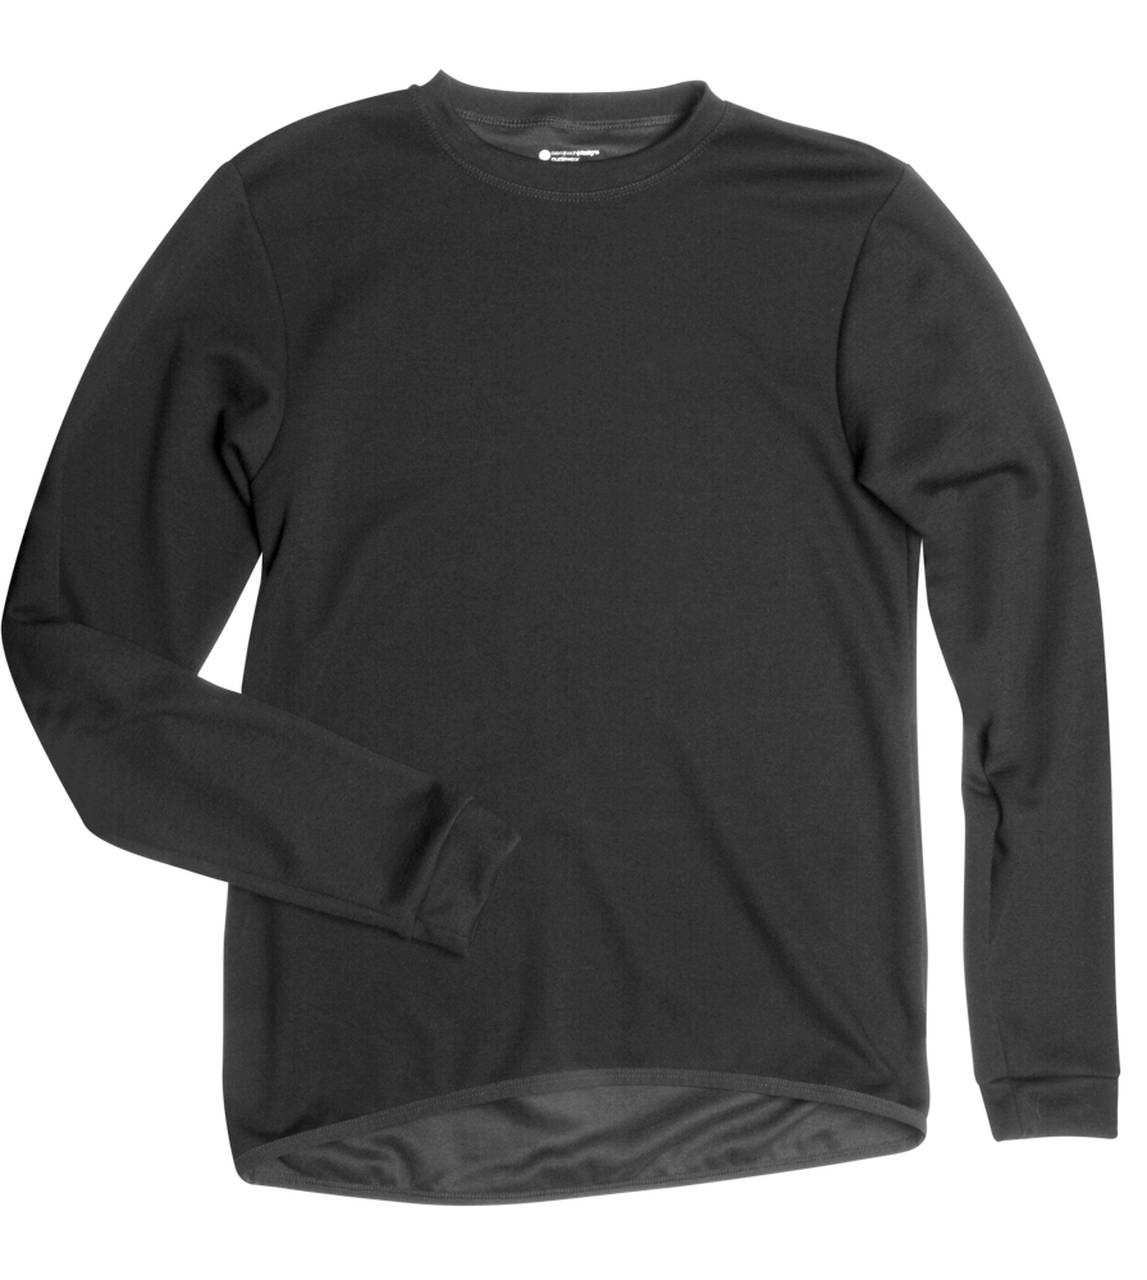 Merino Wool Baselayer flat